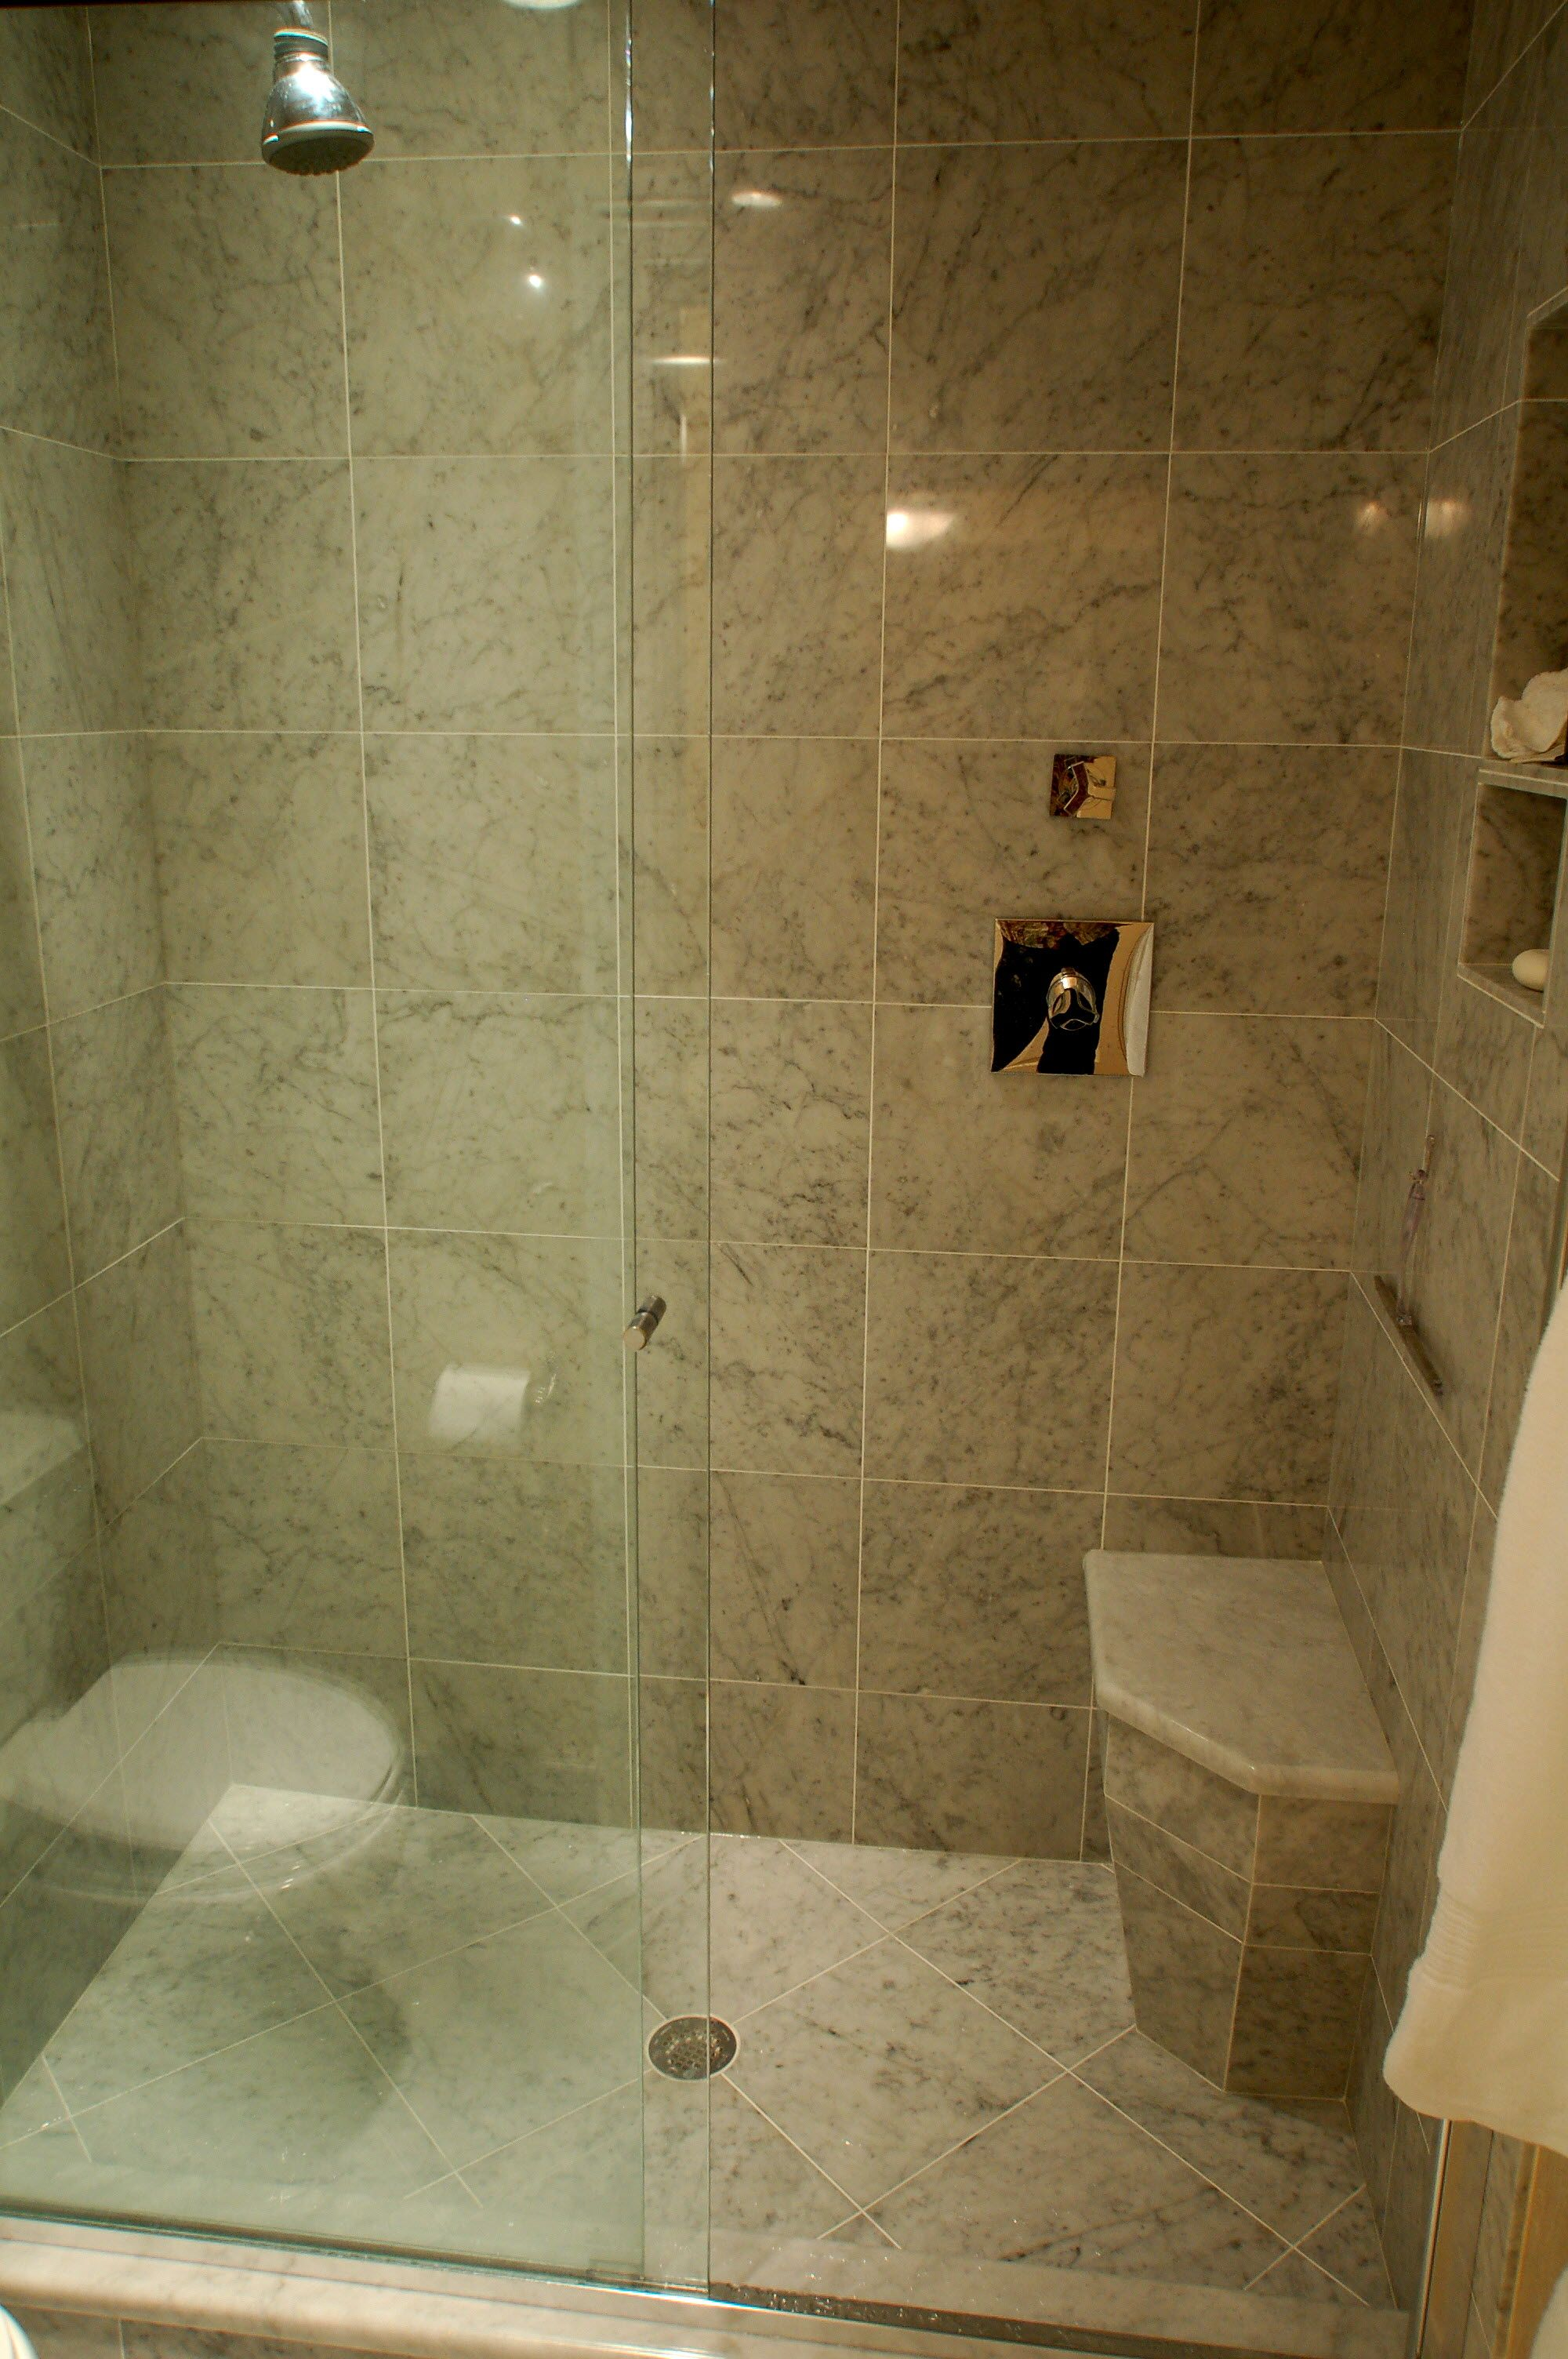 The bathroom shower stall designs above is used allow the decoration ...